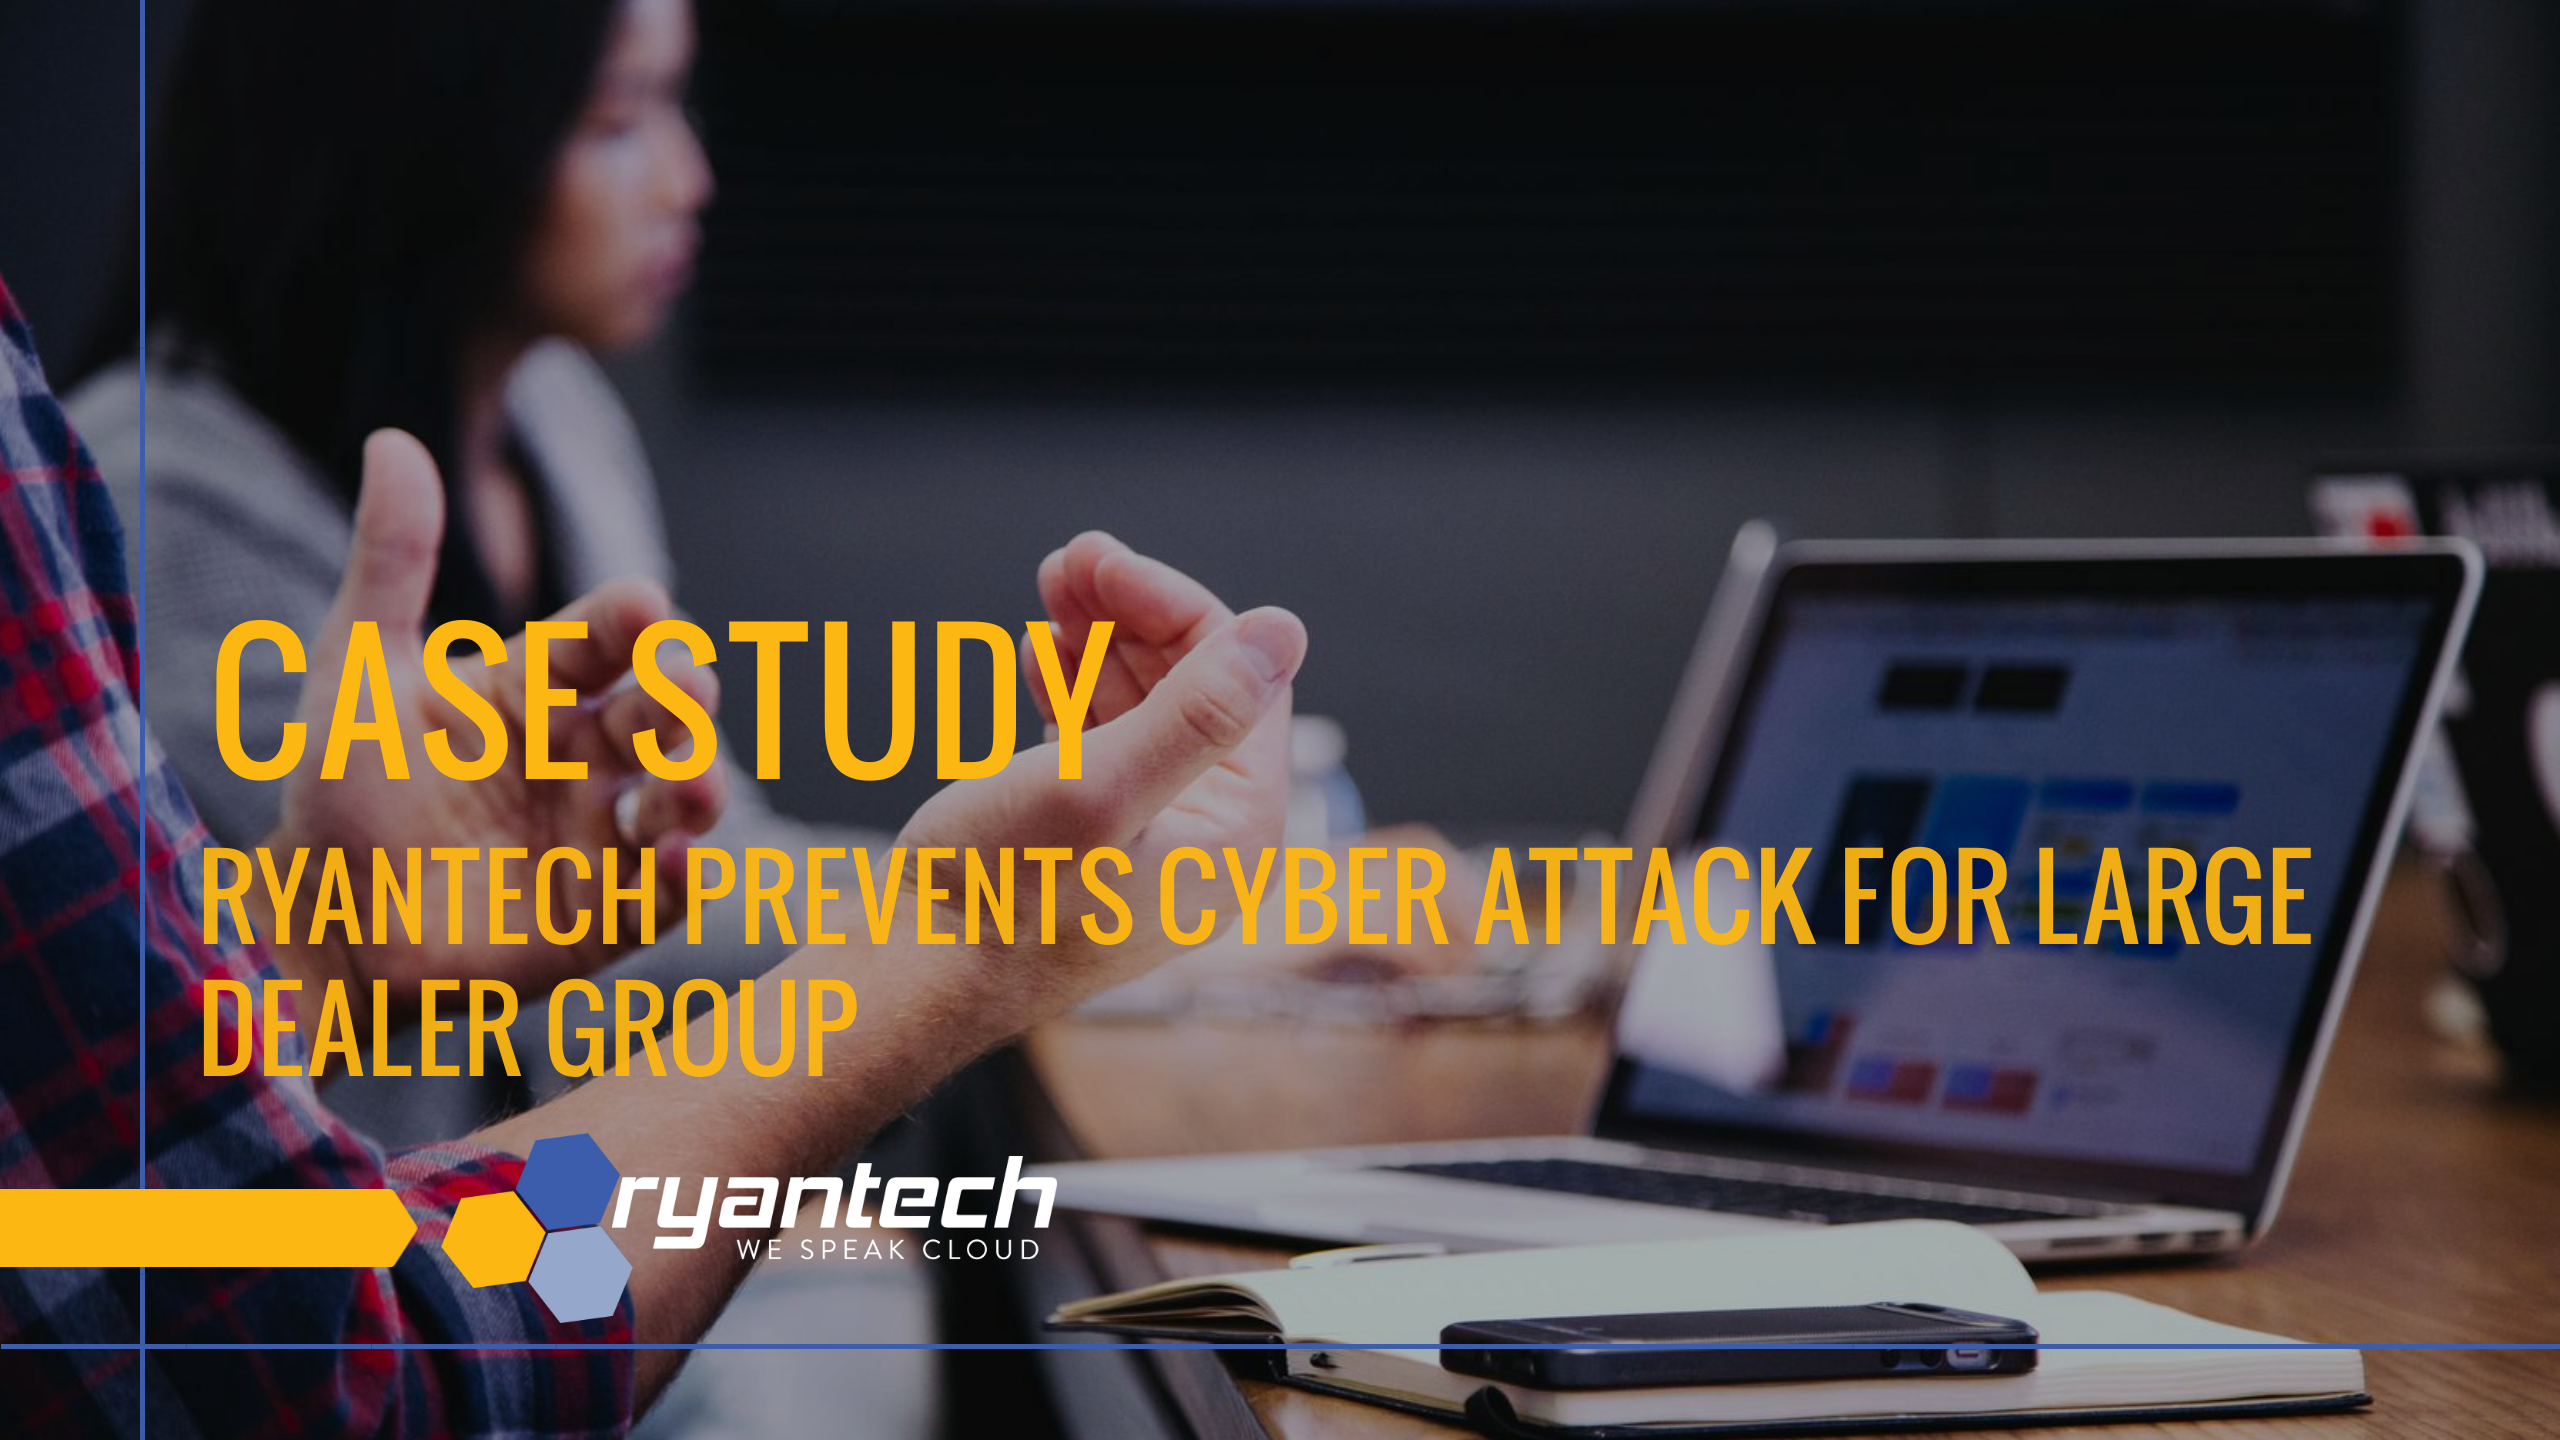 Case Study - RyanTech prevents cyber attack for large dealer group